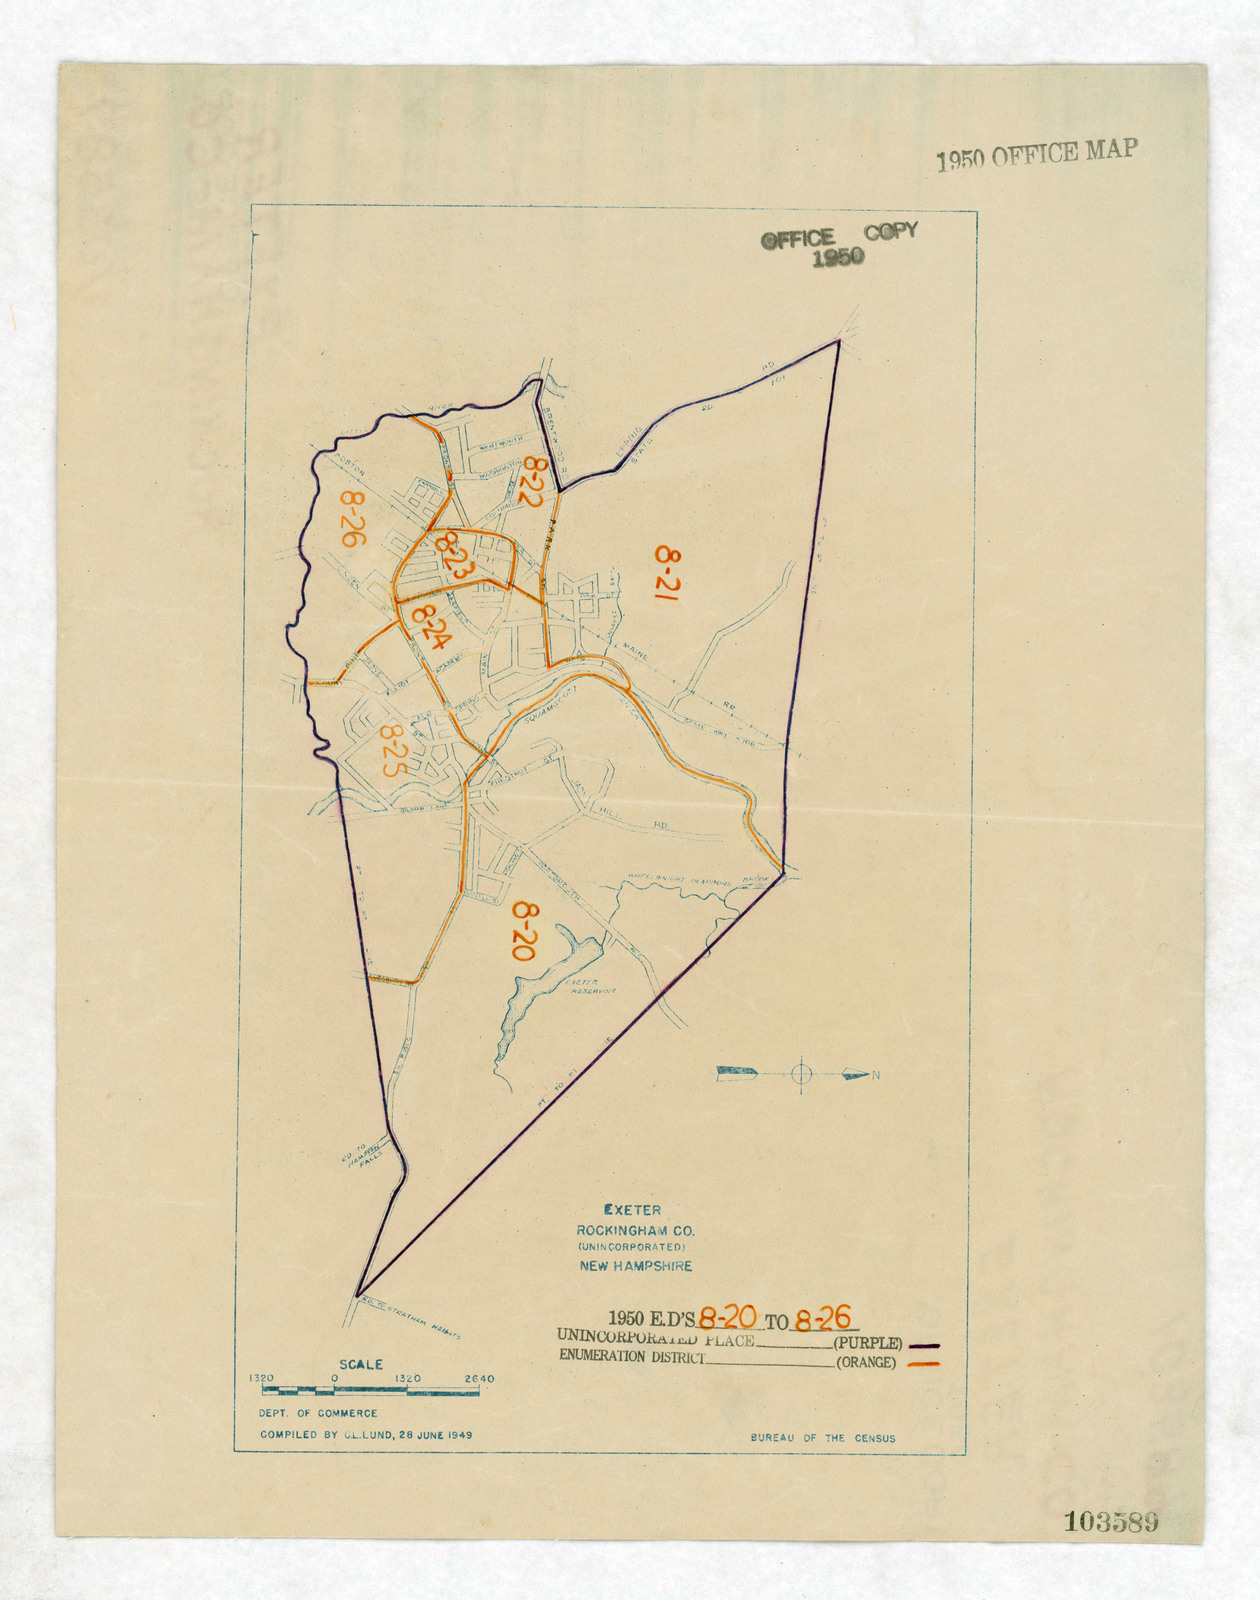 1950 Census Enumeration District Maps - New Hampshire (NH ... on map of cannon mountain nh, map of center sandwich nh, map of lempster nh, map of bethlehem nh, map of nashua nh, map of kingston nh, map of lebanon nh, map of bear island nh, map of center barnstead nh, map of pawtuckaway lake nh, map of laconia nh, map of merrimack valley nh, map of kilkenny nh, map of oxford nh, map of mirror lake nh, map of orford nh, map of wilmot nh, map of new hampton nh, map of nh towns, map of chatham nh,